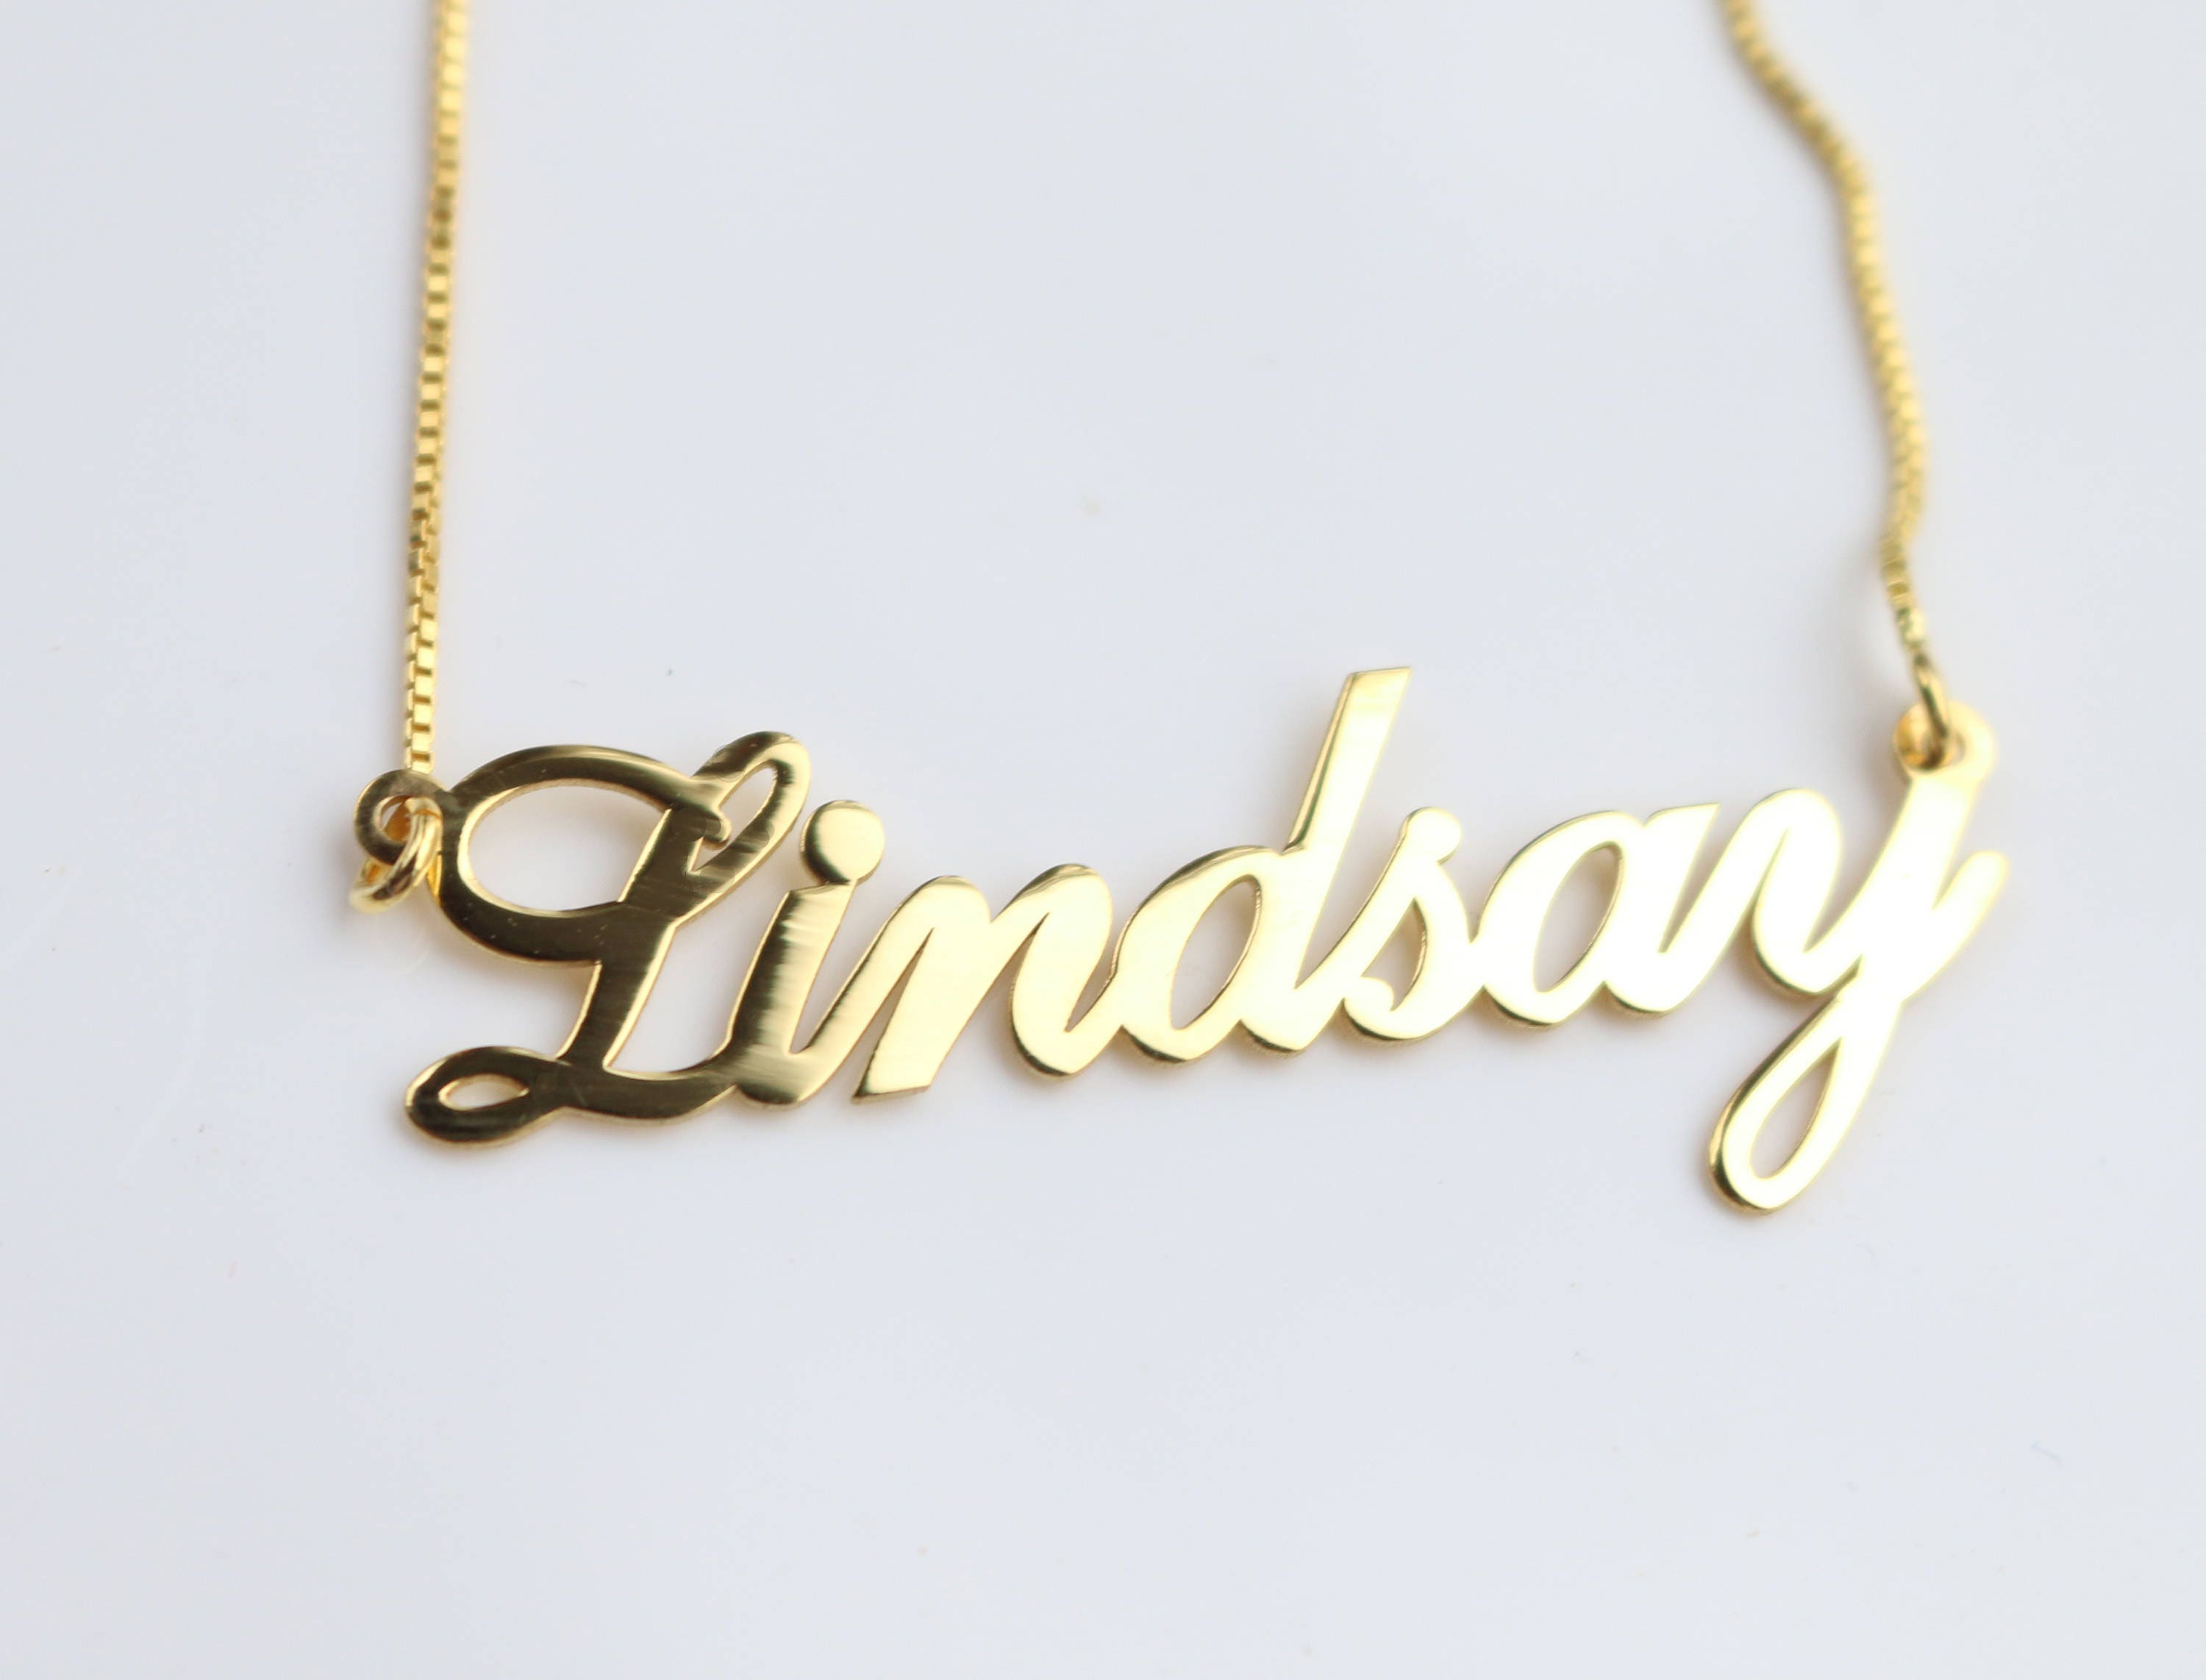 name stamped gold chains bar necklace necklaces img handmade hand jewelry